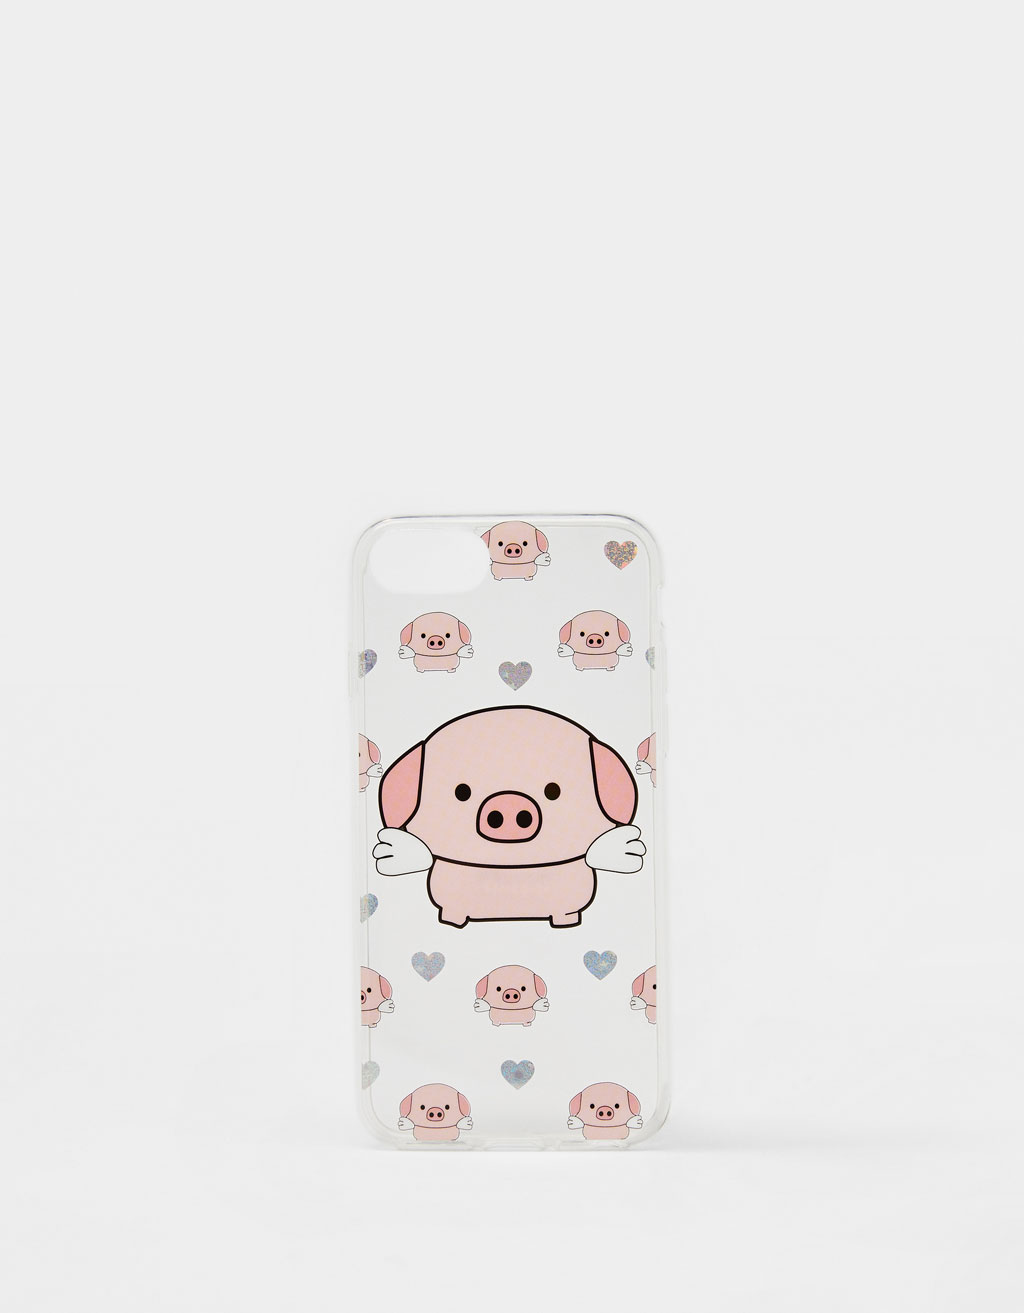 Coque Little Pig iPhone iPhone 6 / 6s / 7 / 8